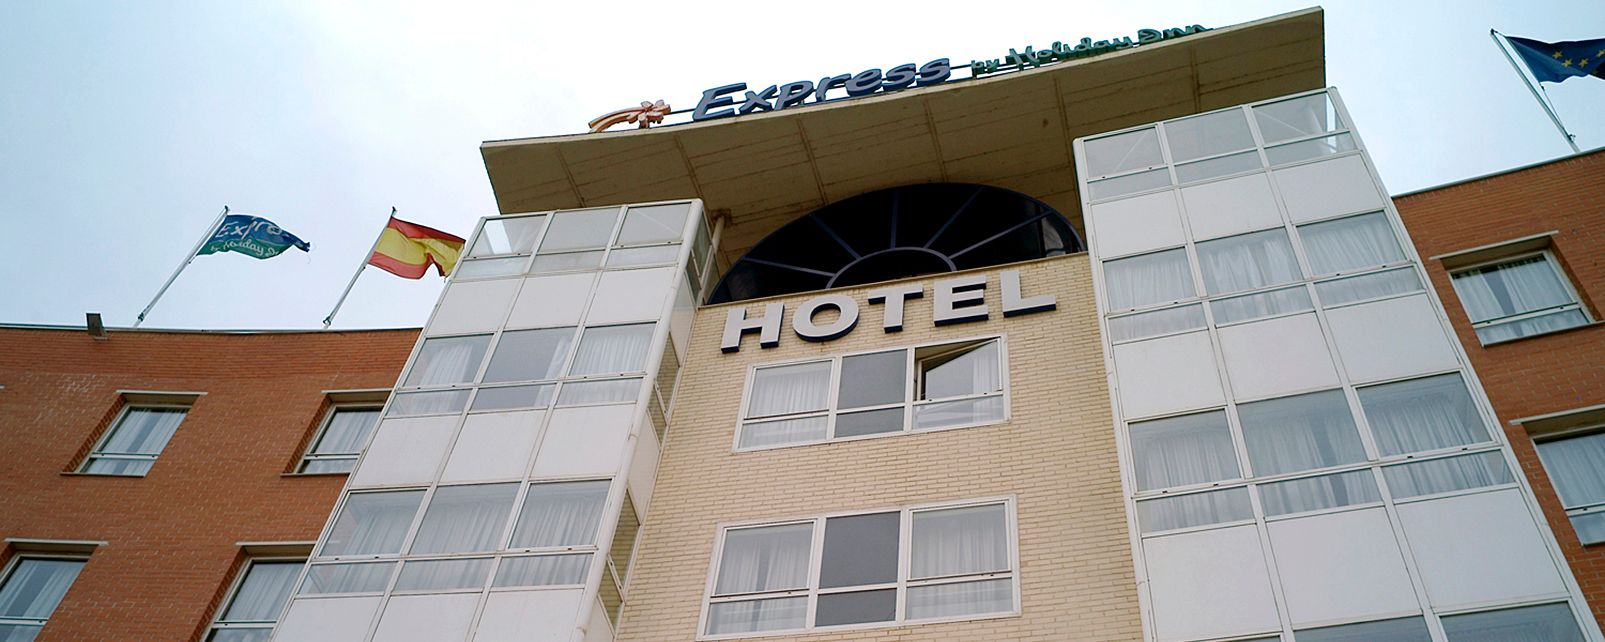 Hotel Express by Holiday Inn San Luis